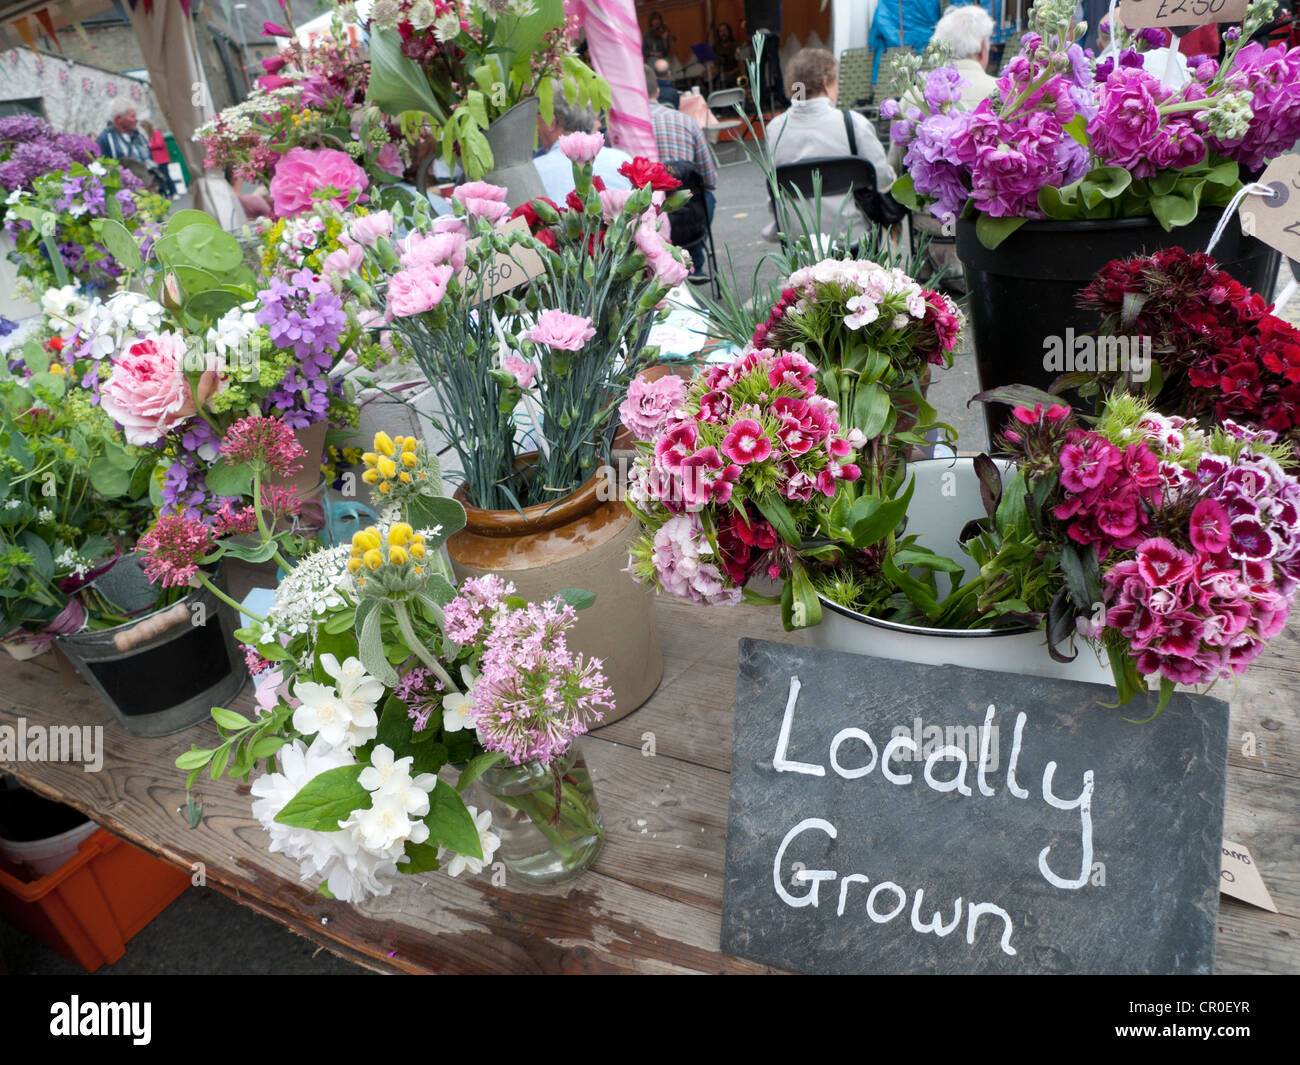 Locally grown sign at local cut flower street market stall Hay-on-Wye town during the annual Hay Festival of Literature - Stock Image